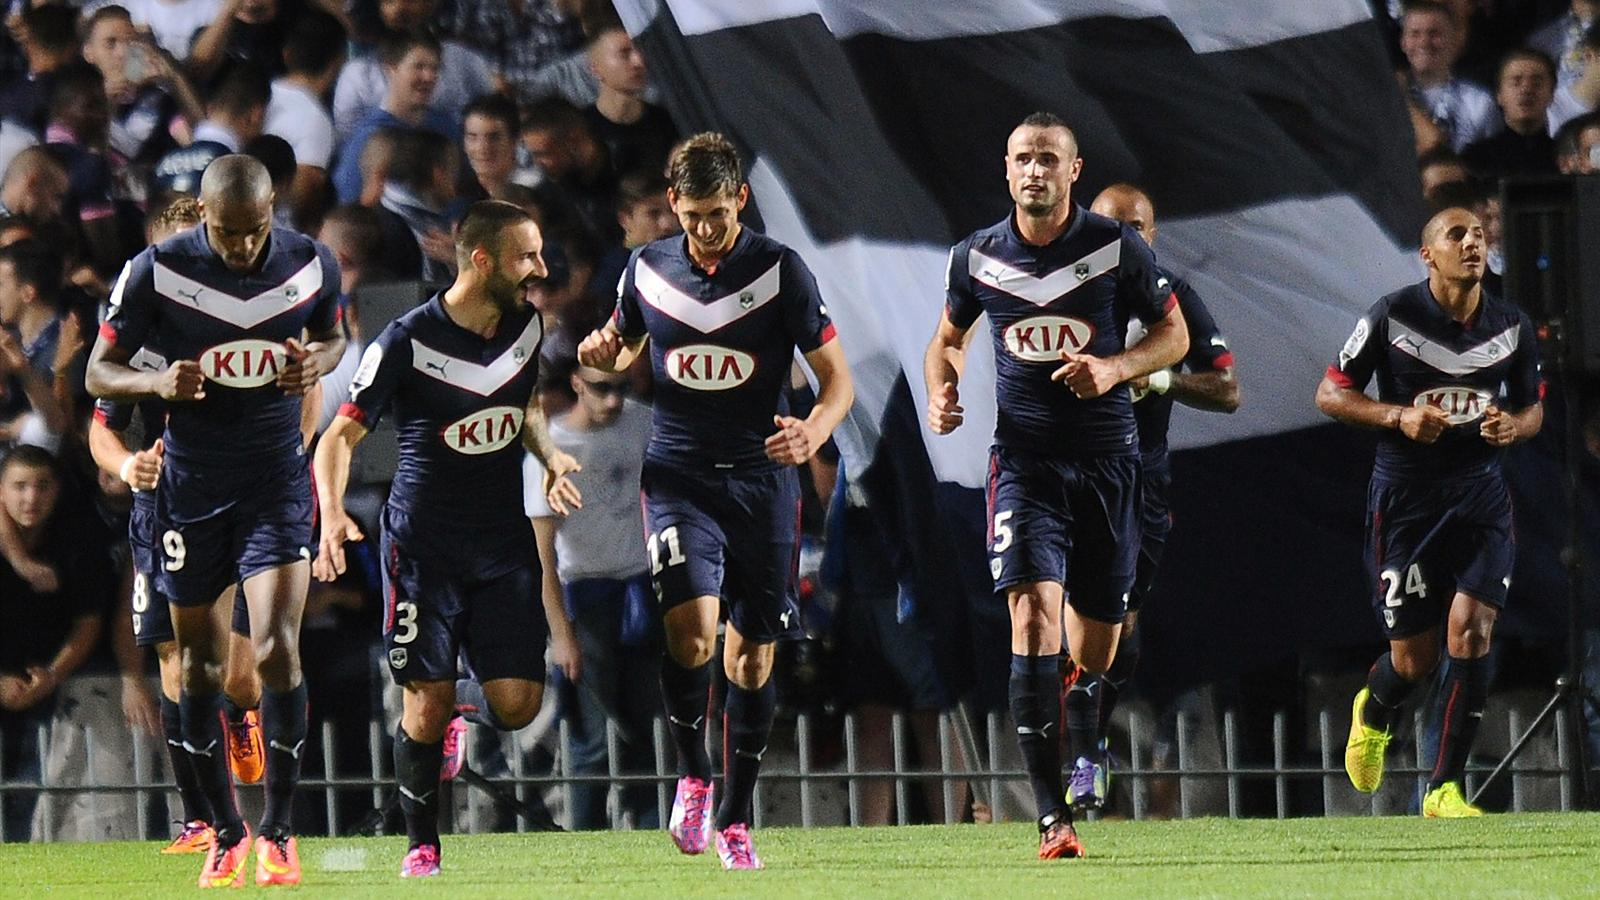 Match Reims vs Bordeaux en direct streaming live